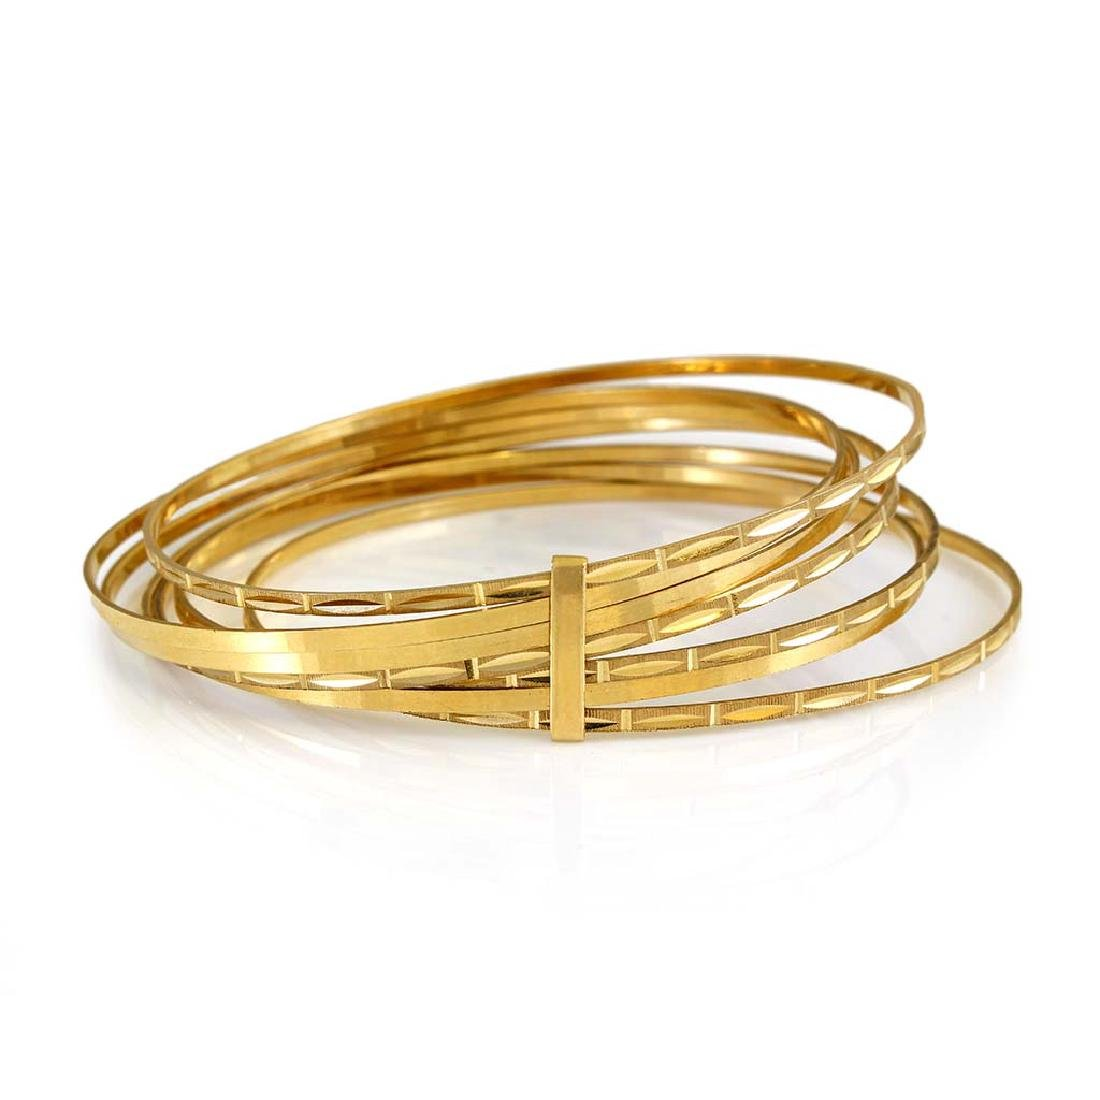 14K Yellow Gold 7 Day Slip-on Bangle Bracelet - 2